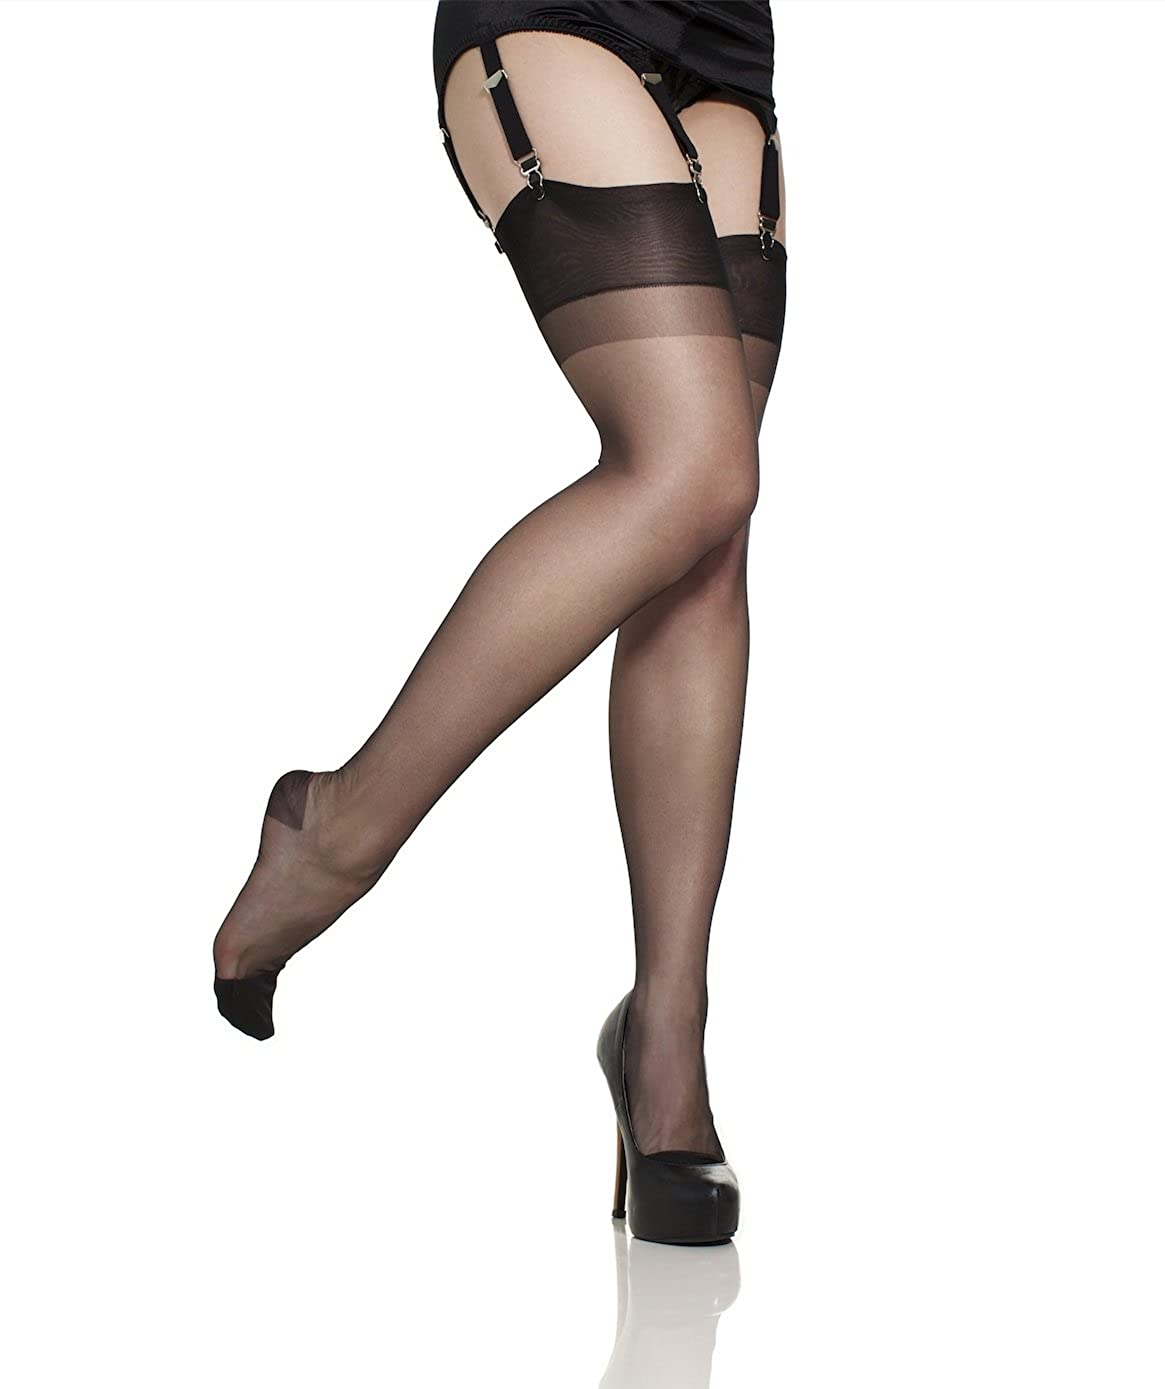 17b7255de Gio Reinforced Heel and Toe (RHT) Ultra Sheer 100% Nylon Stockings at  Amazon Women s Clothing store  Pantyhose